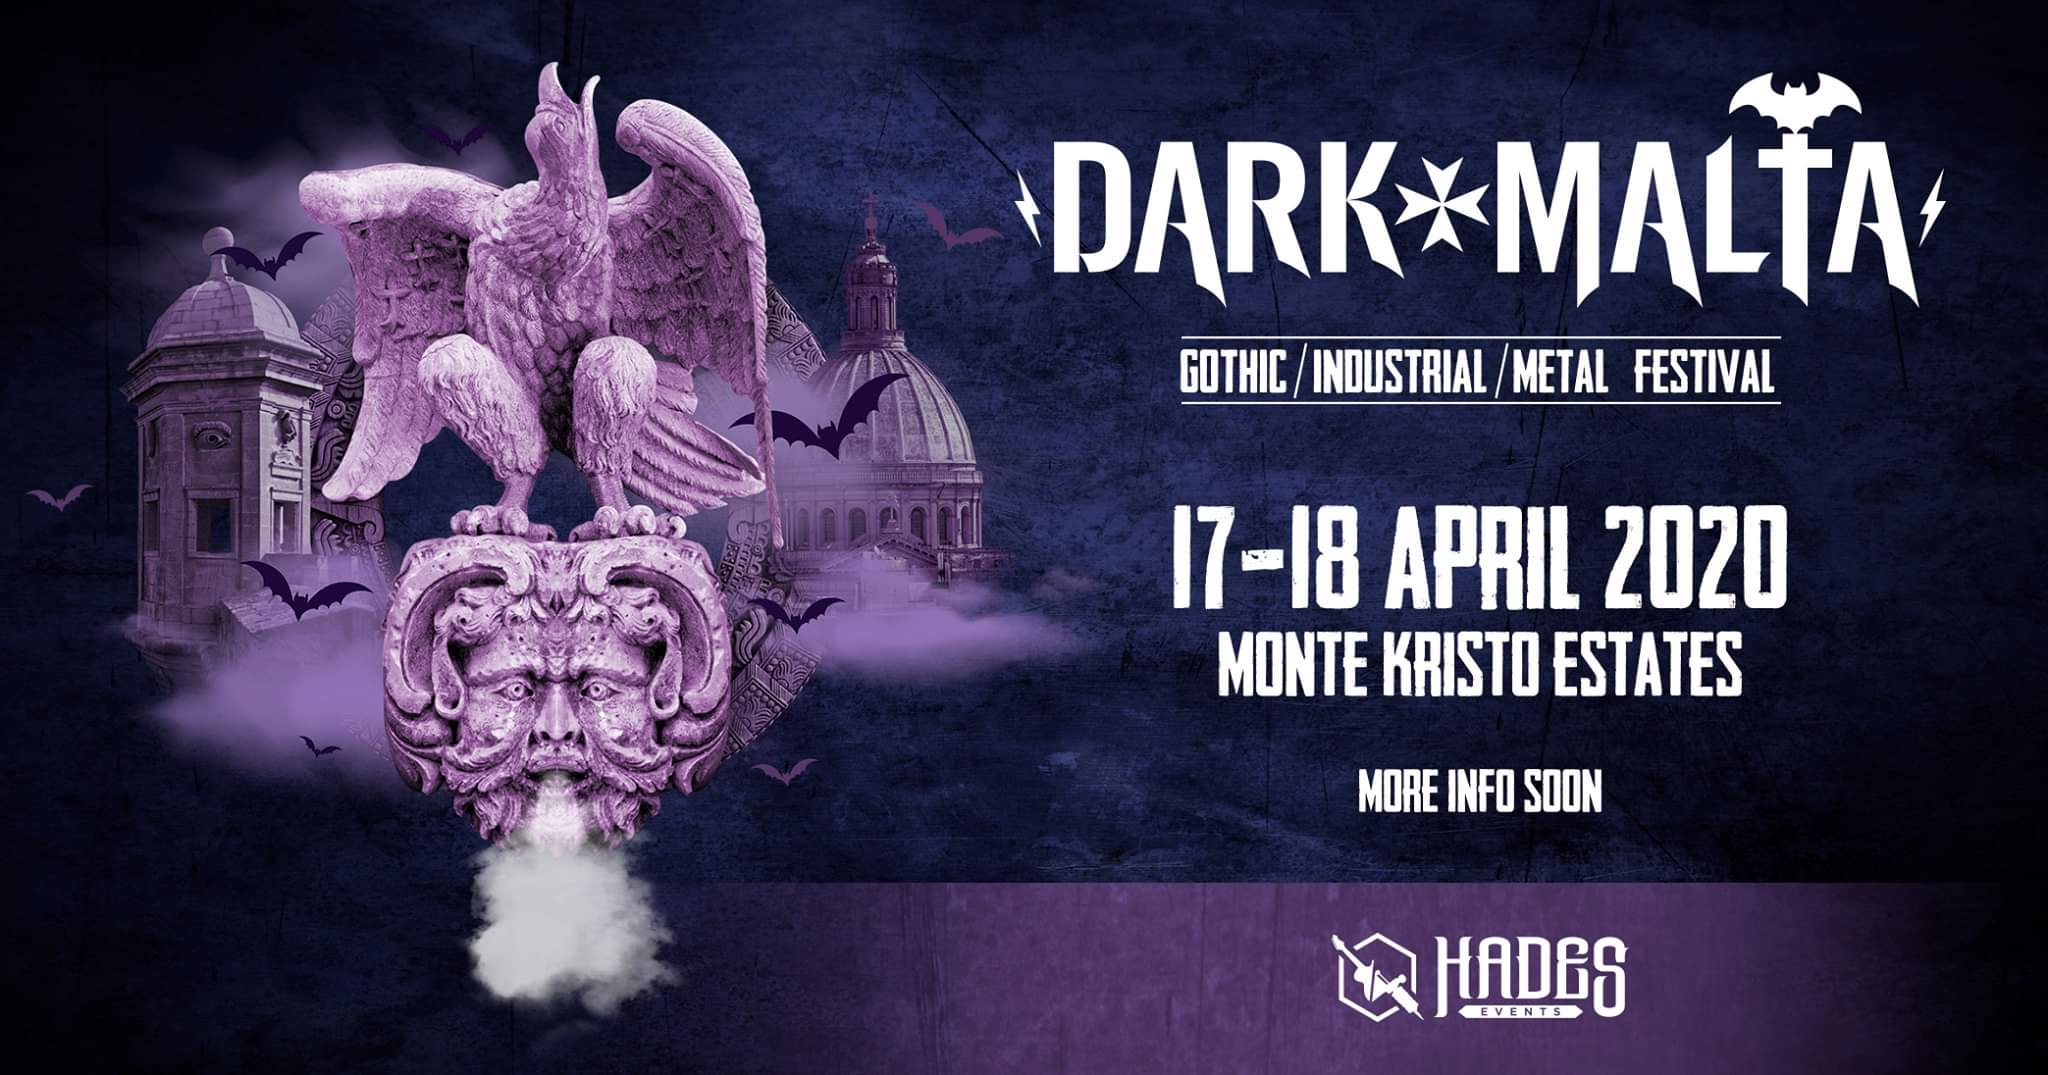 Dark Malta Festival is back for the 3rd Edition again offering you international gothic/metal/industrial bands on 2 days giving you an unforgettable experience bigger and better than the previous years including Headliners MONO INC, COVENANT, SOLAR FAKE, LAETHER STRIP, SHE PAST AWAY, NACHTMAR and more .....